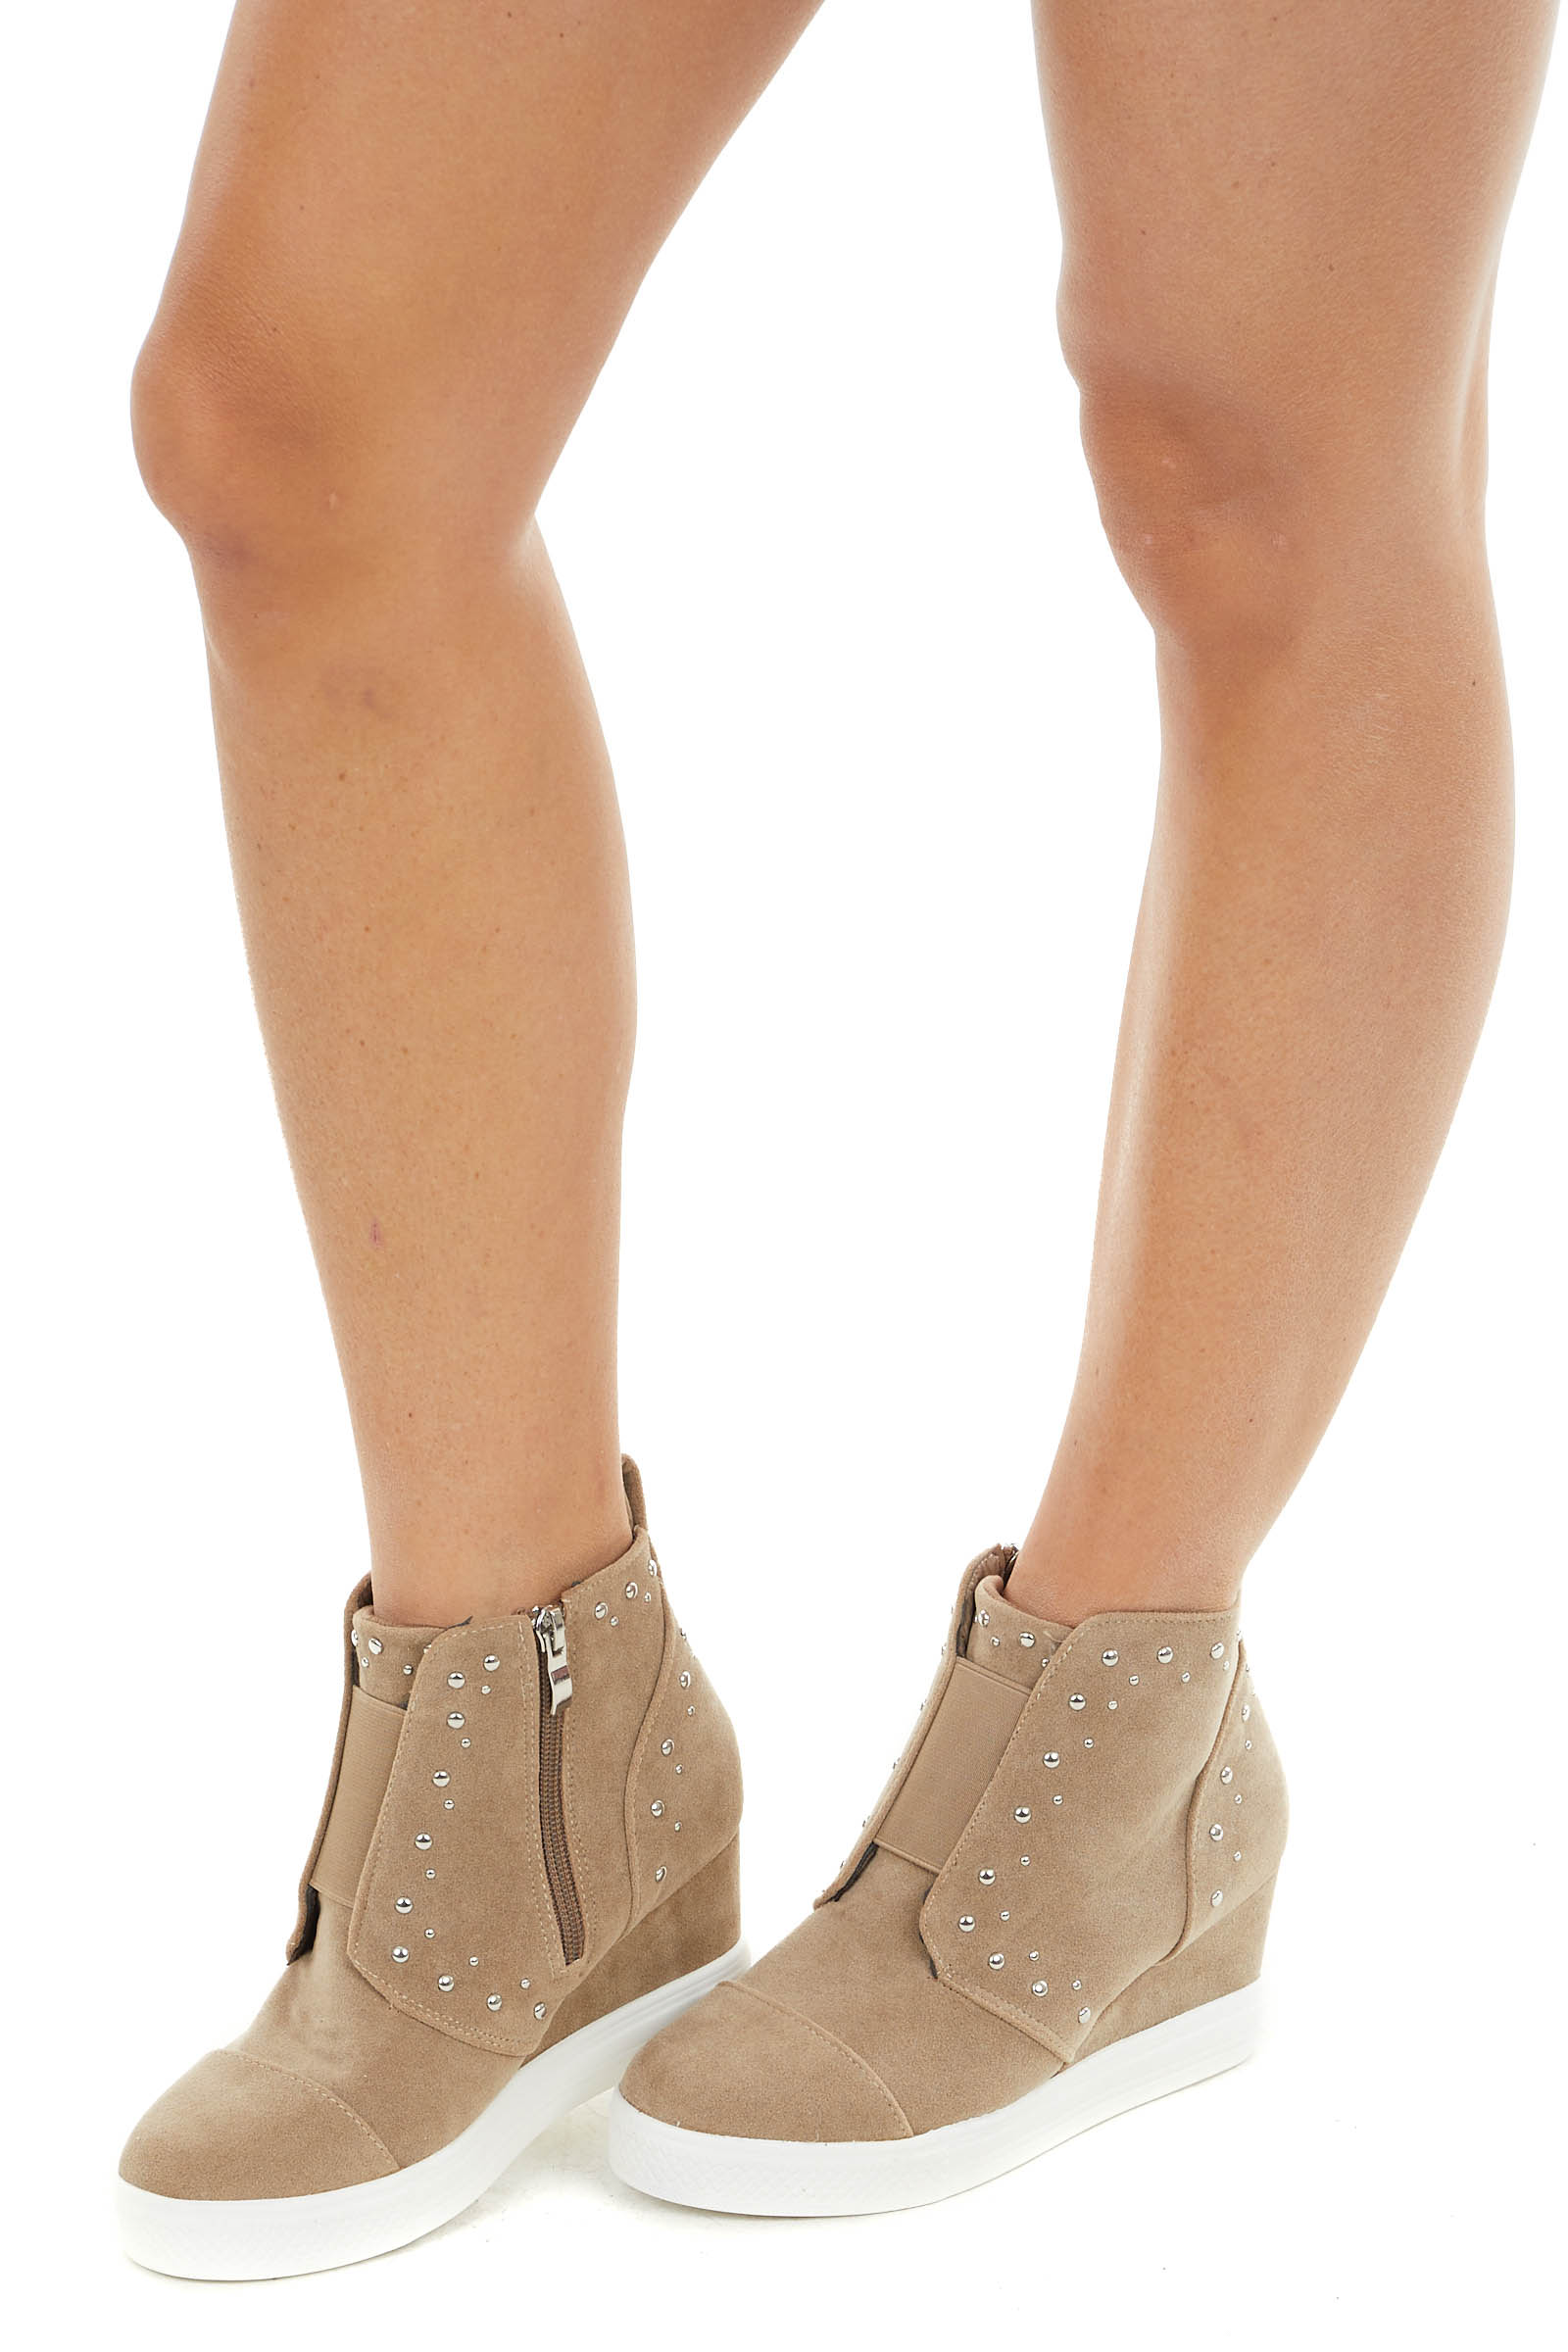 Khaki Faux Suede Wedge Sneakers with Silver Stud Details